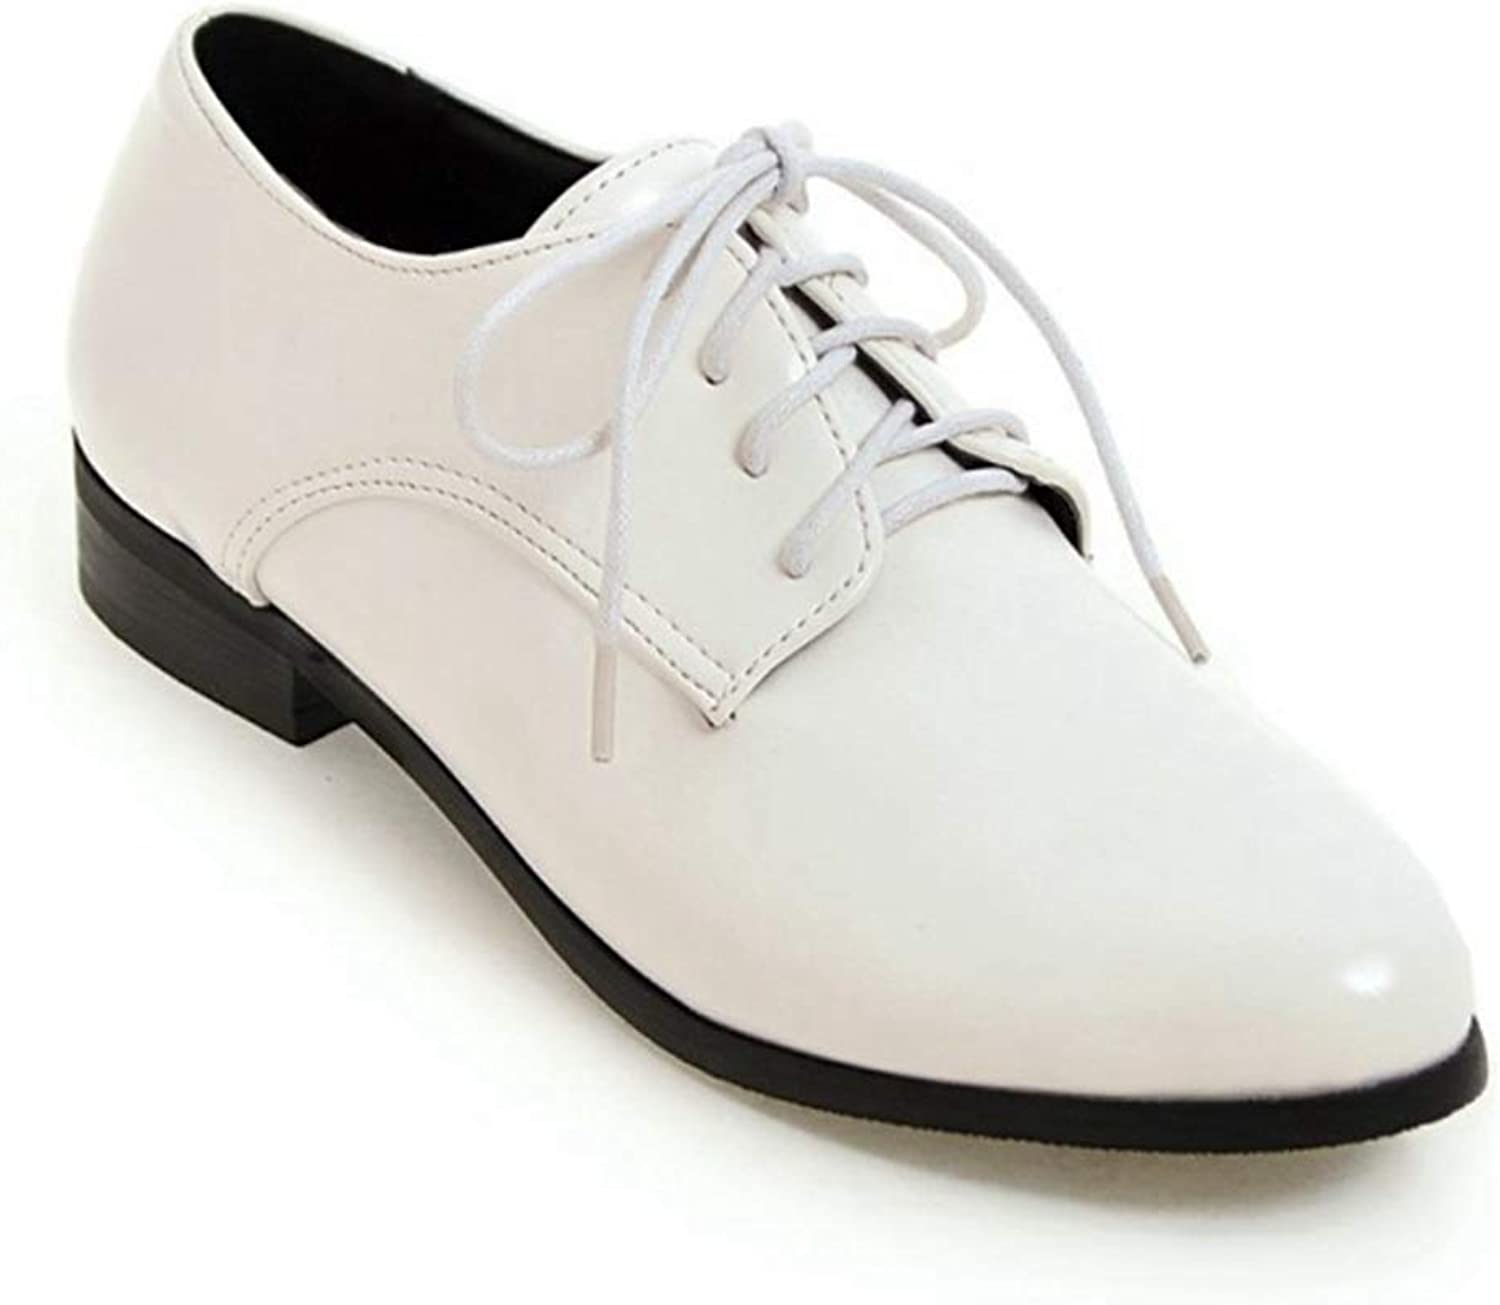 Elsa Wilcox Women Comfortable Pointy Toe Oxford Low Heel Vintage Oxfords shoes Perforated Lace-up Slip-On